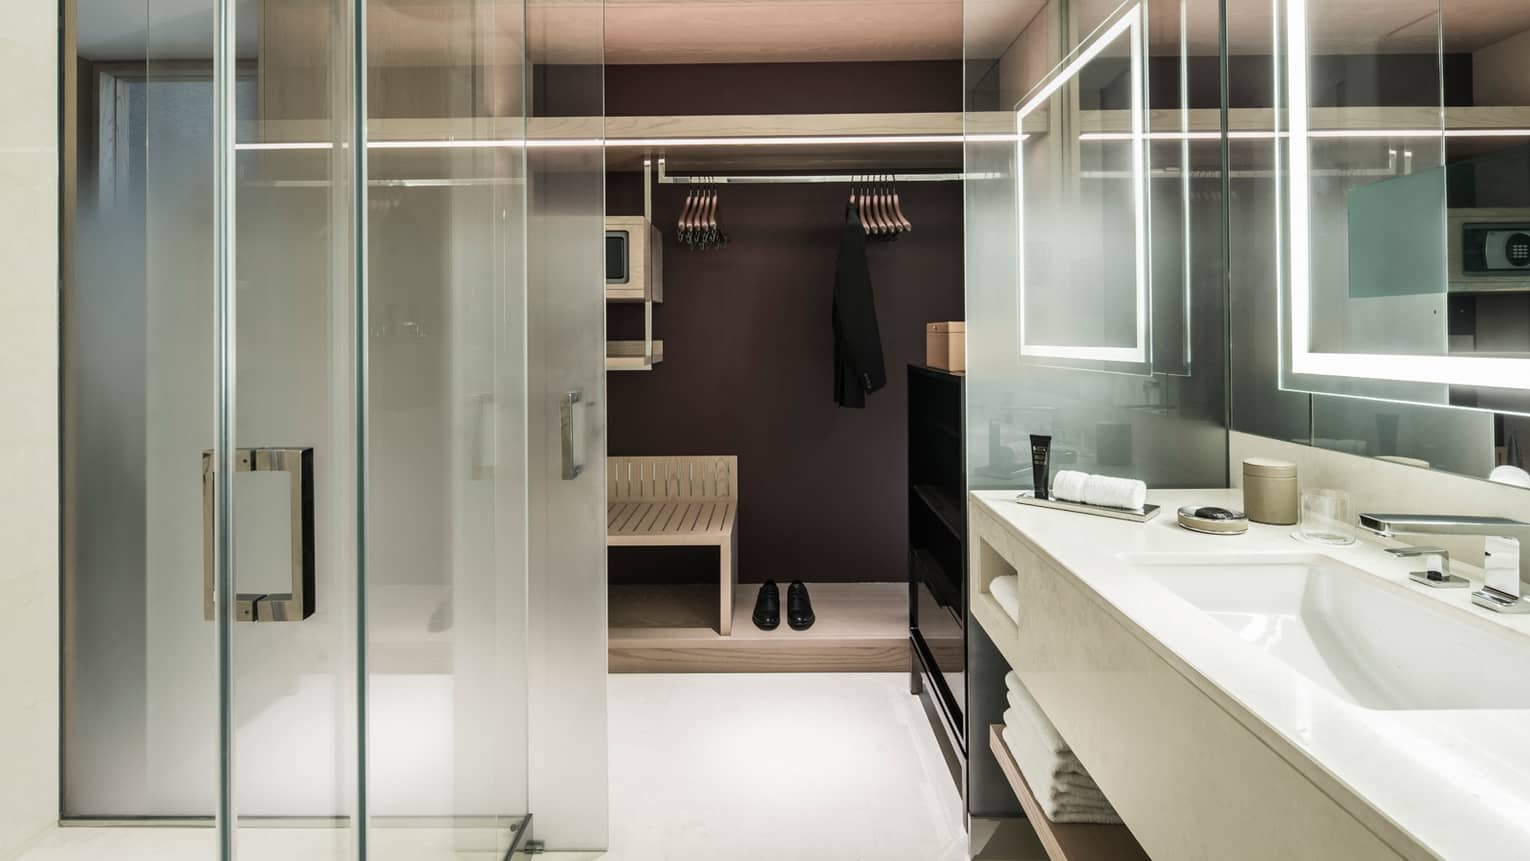 Premier Room bathroom with glass shower, white sink, large walk-in closet